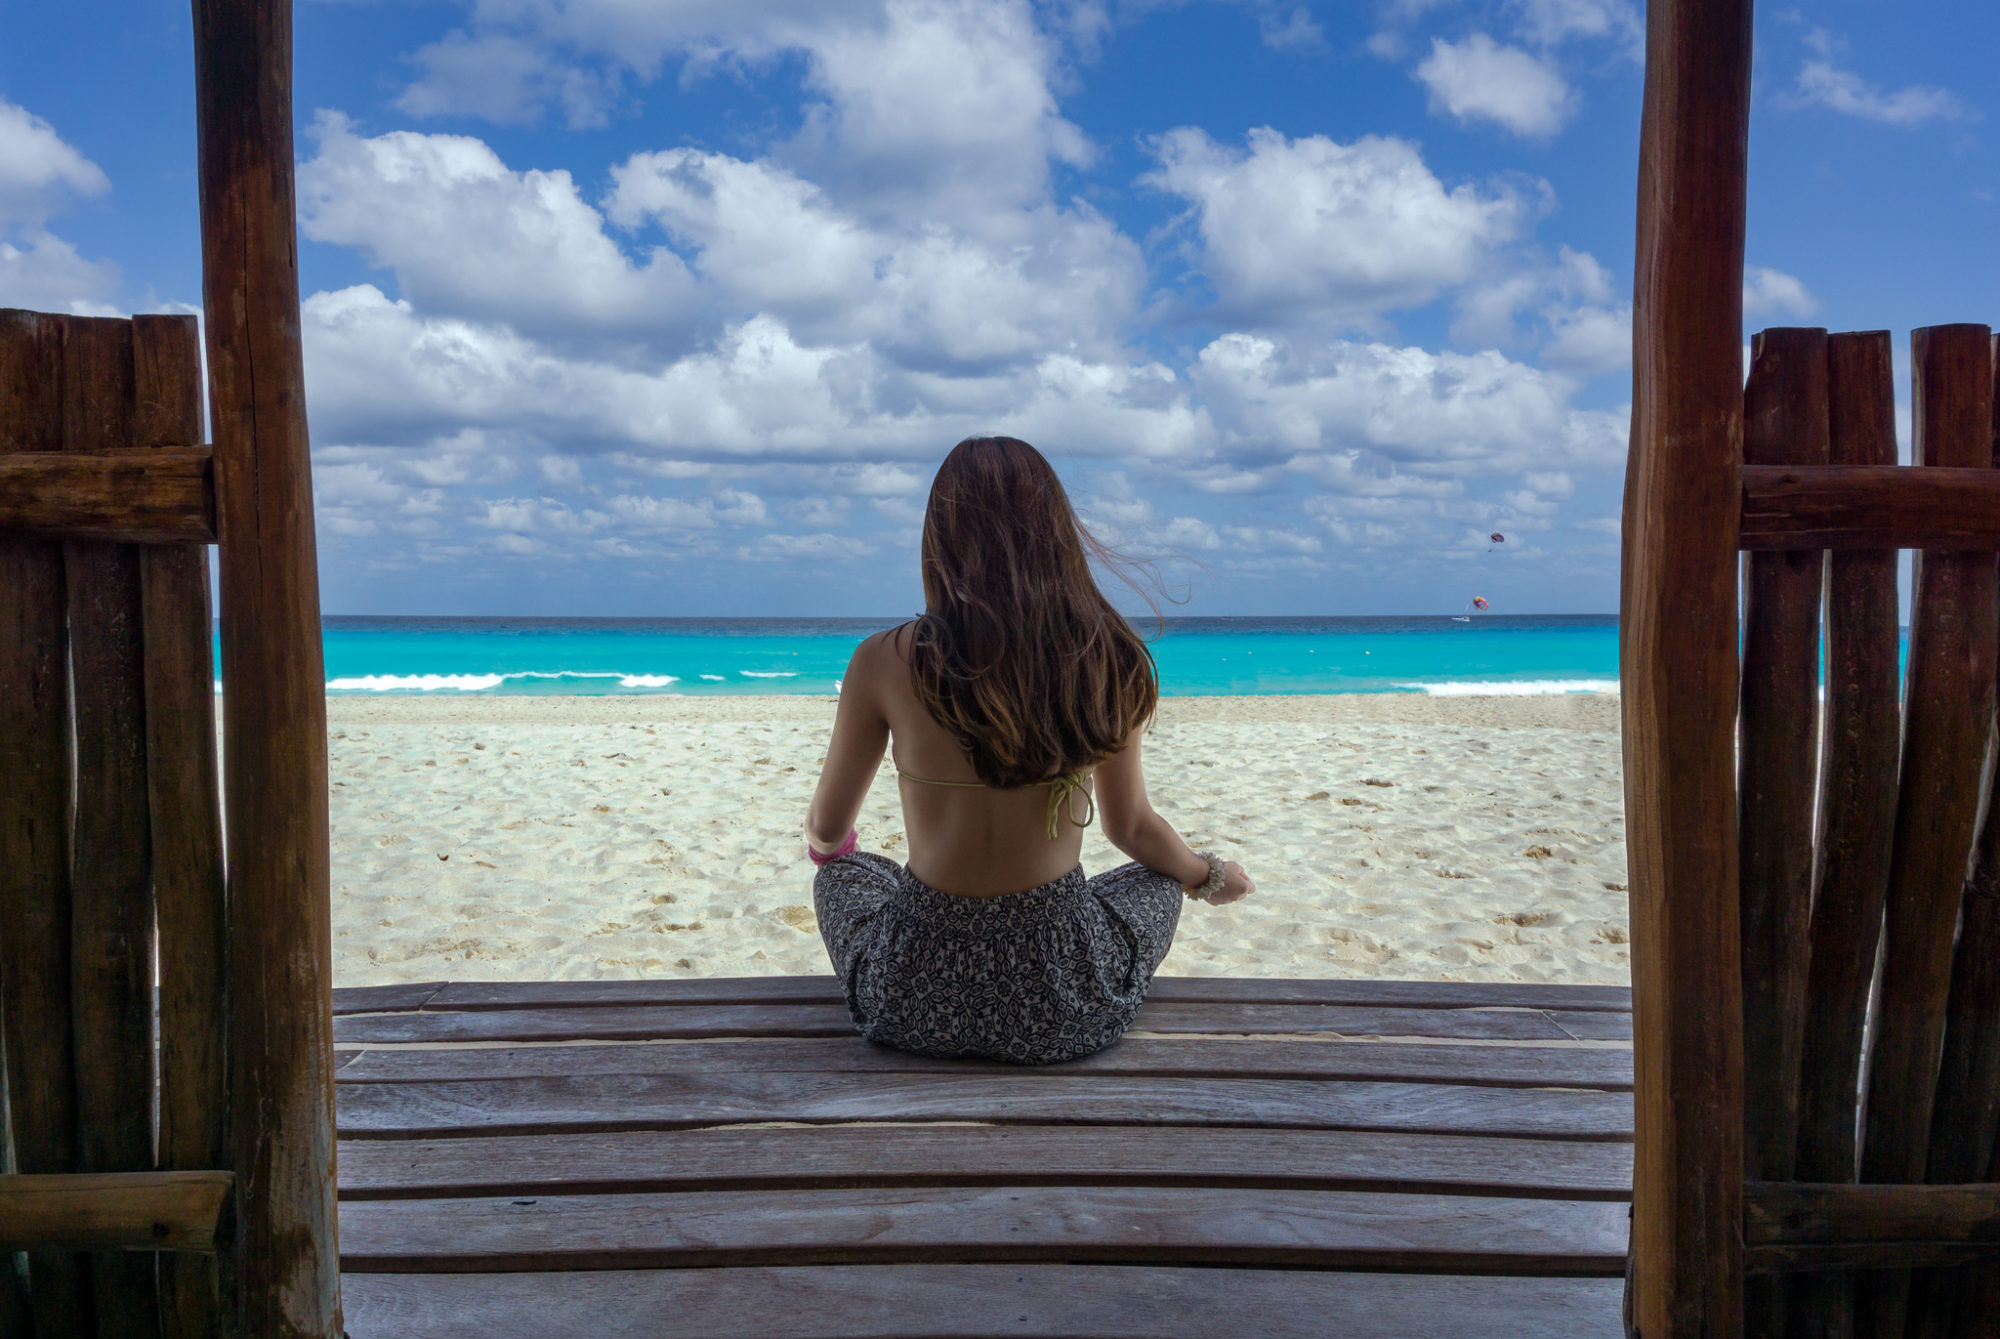 girl on beach in cancun mexico via rick gonzalez on flickr